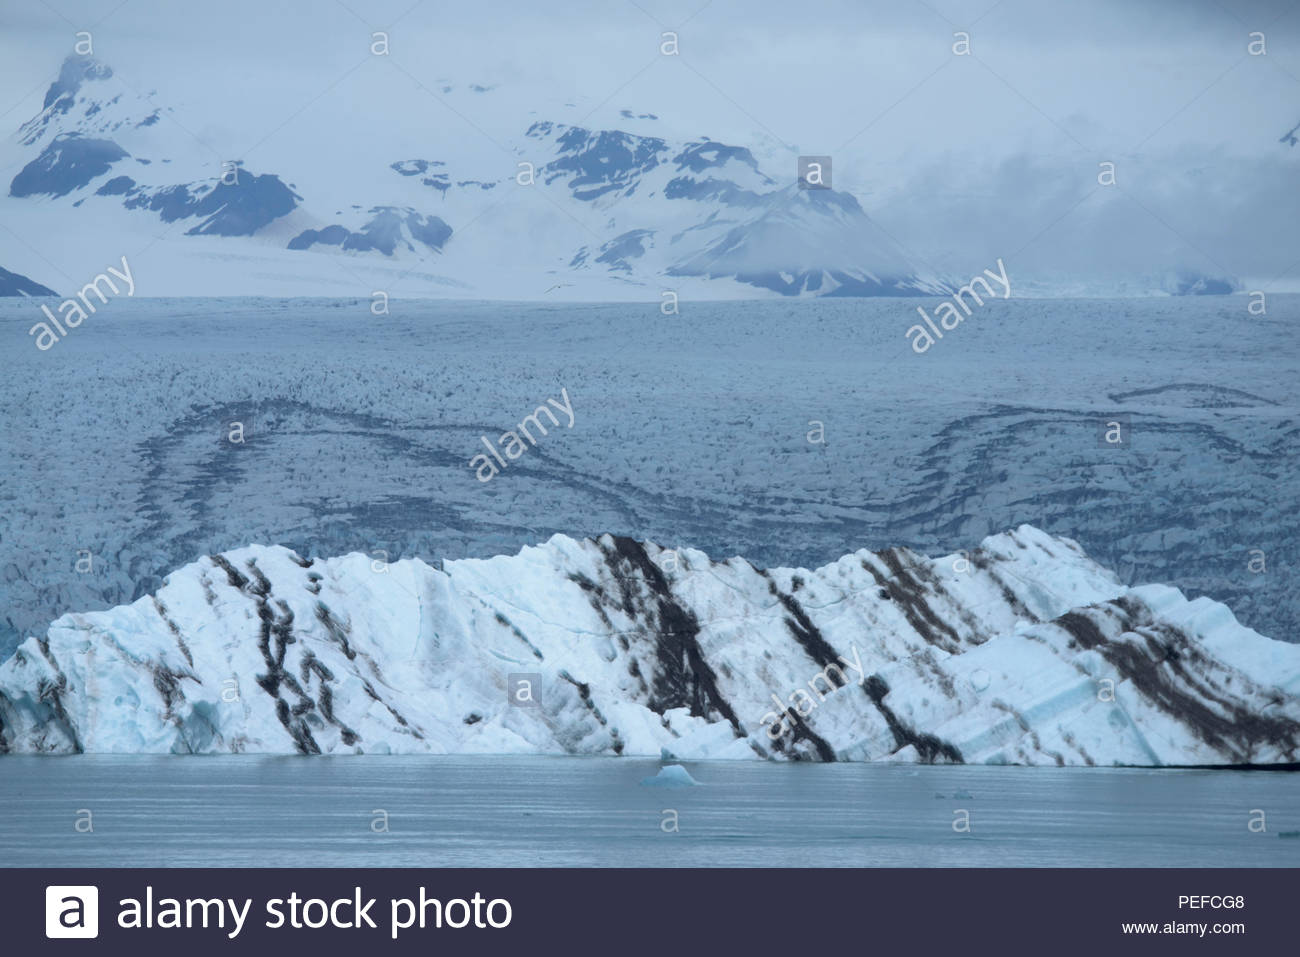 Vatnajokull, Iceland's largest glacier in Iceland, covering 8% of the island. Stock Photo